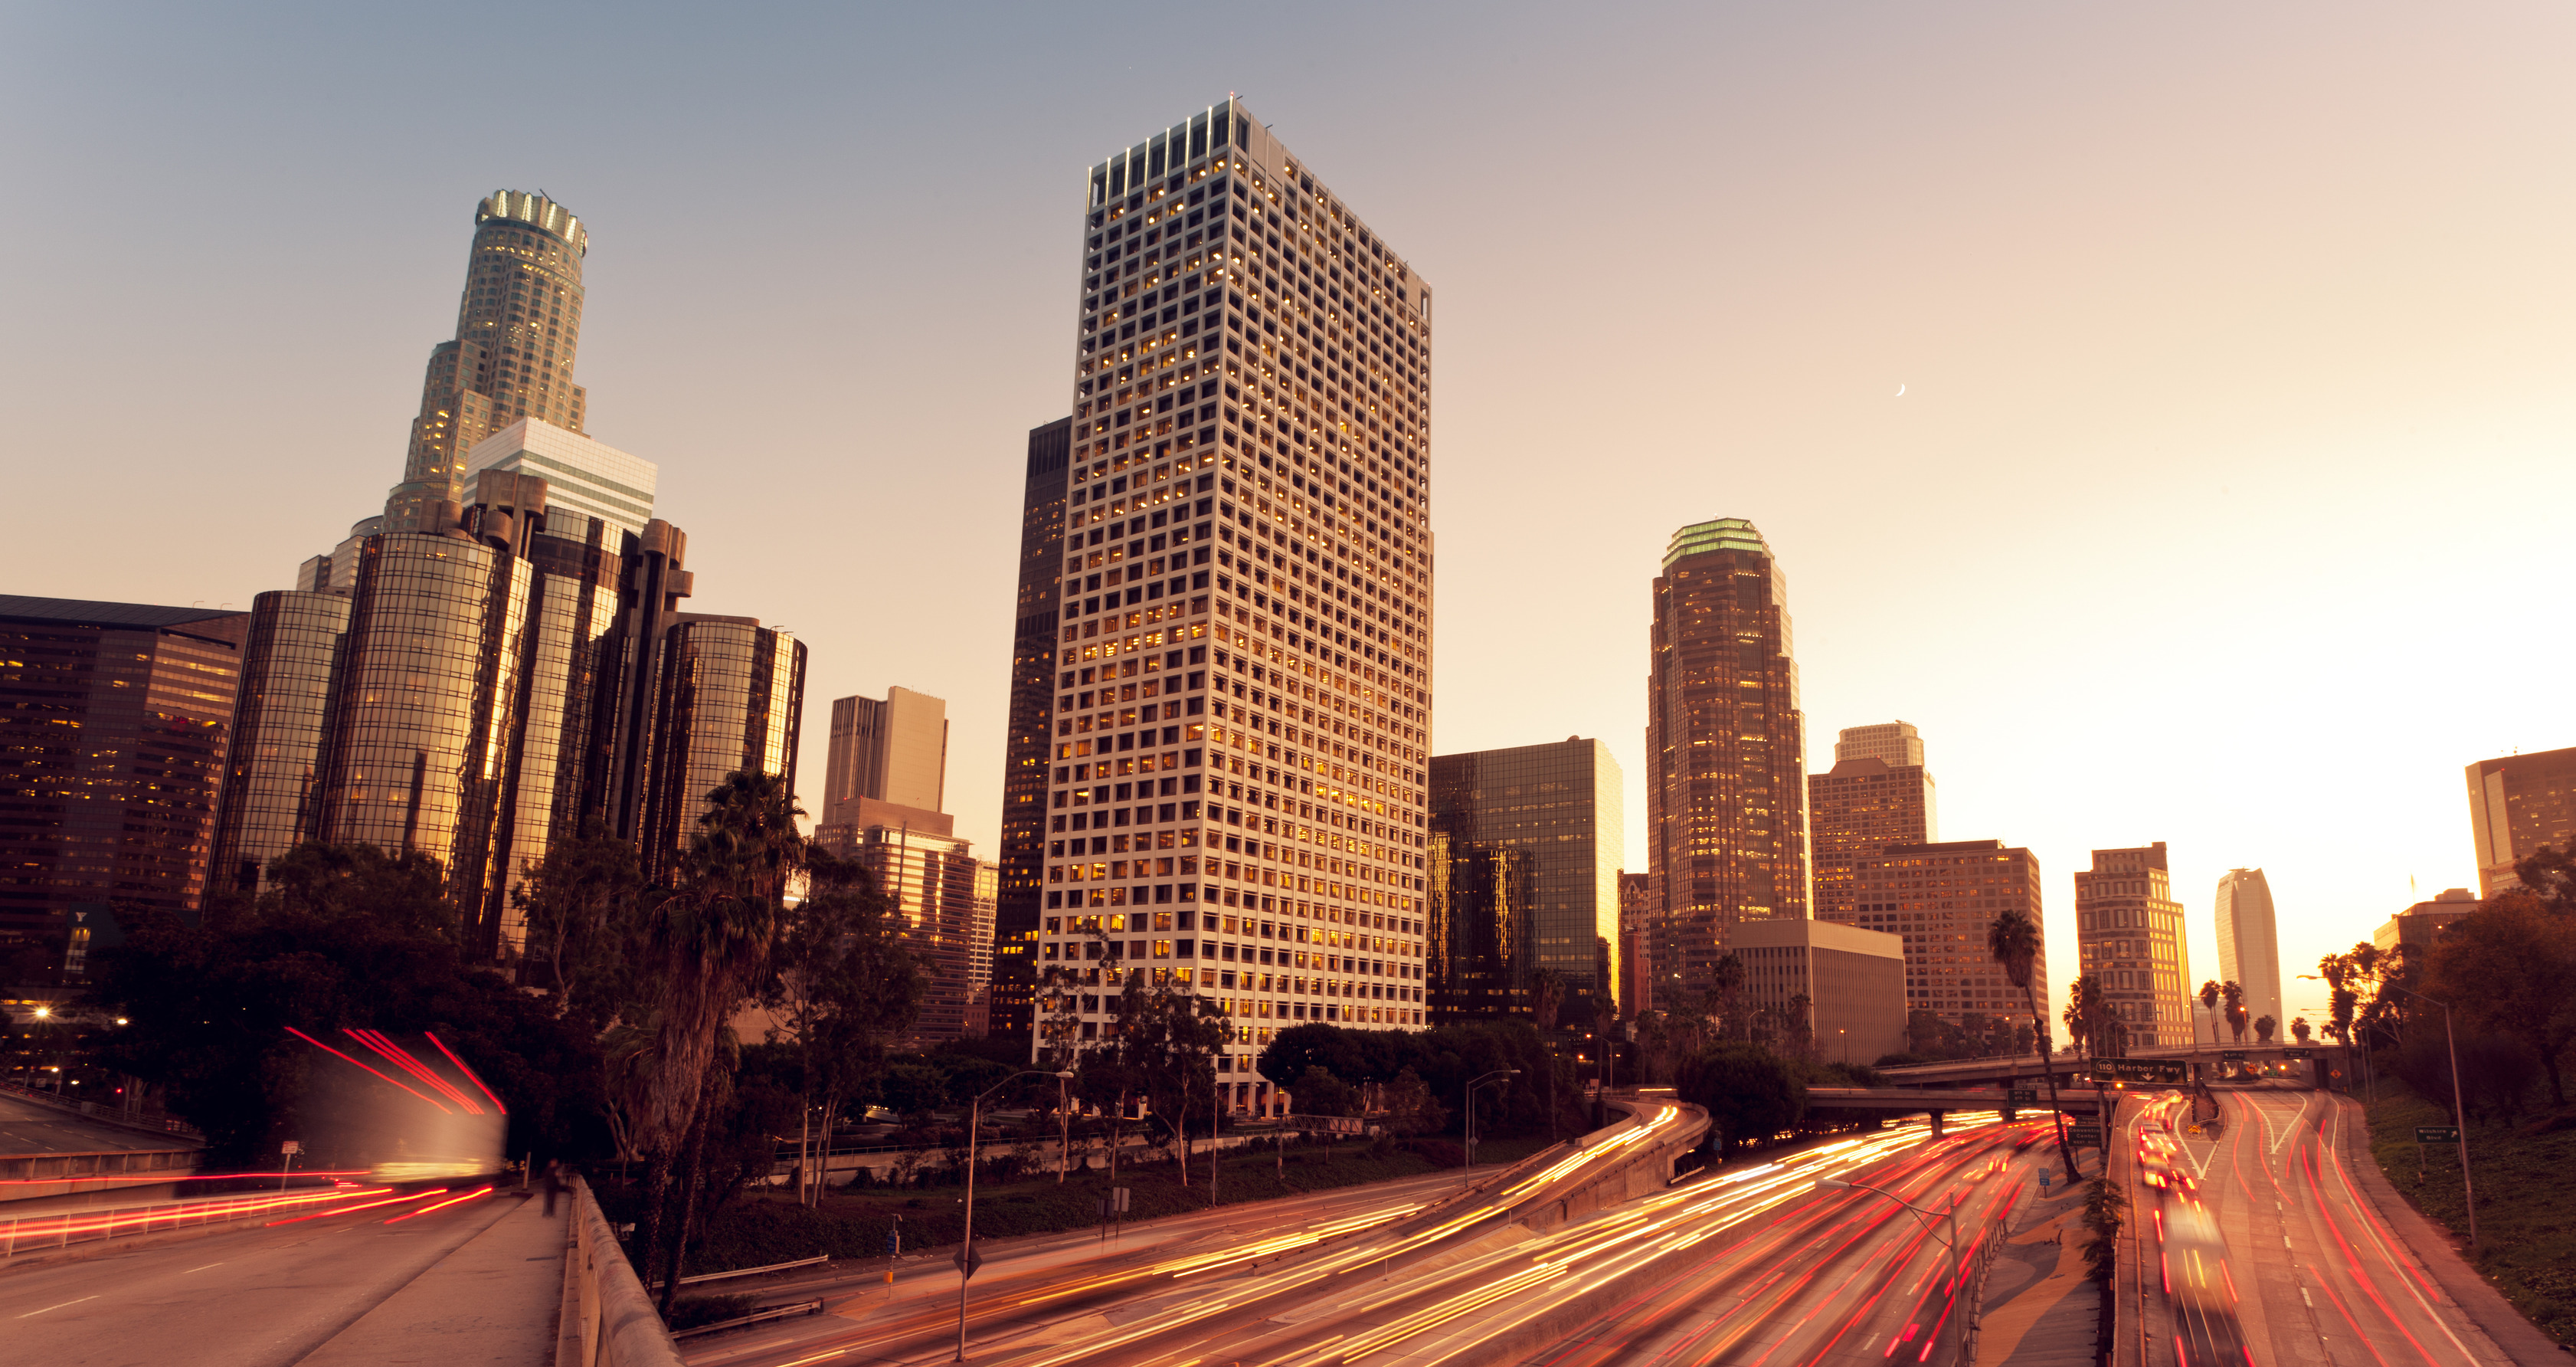 photodune-1717995-los-angeles-urban-city-at-sunset-with-freeway-trafic-l.jpg